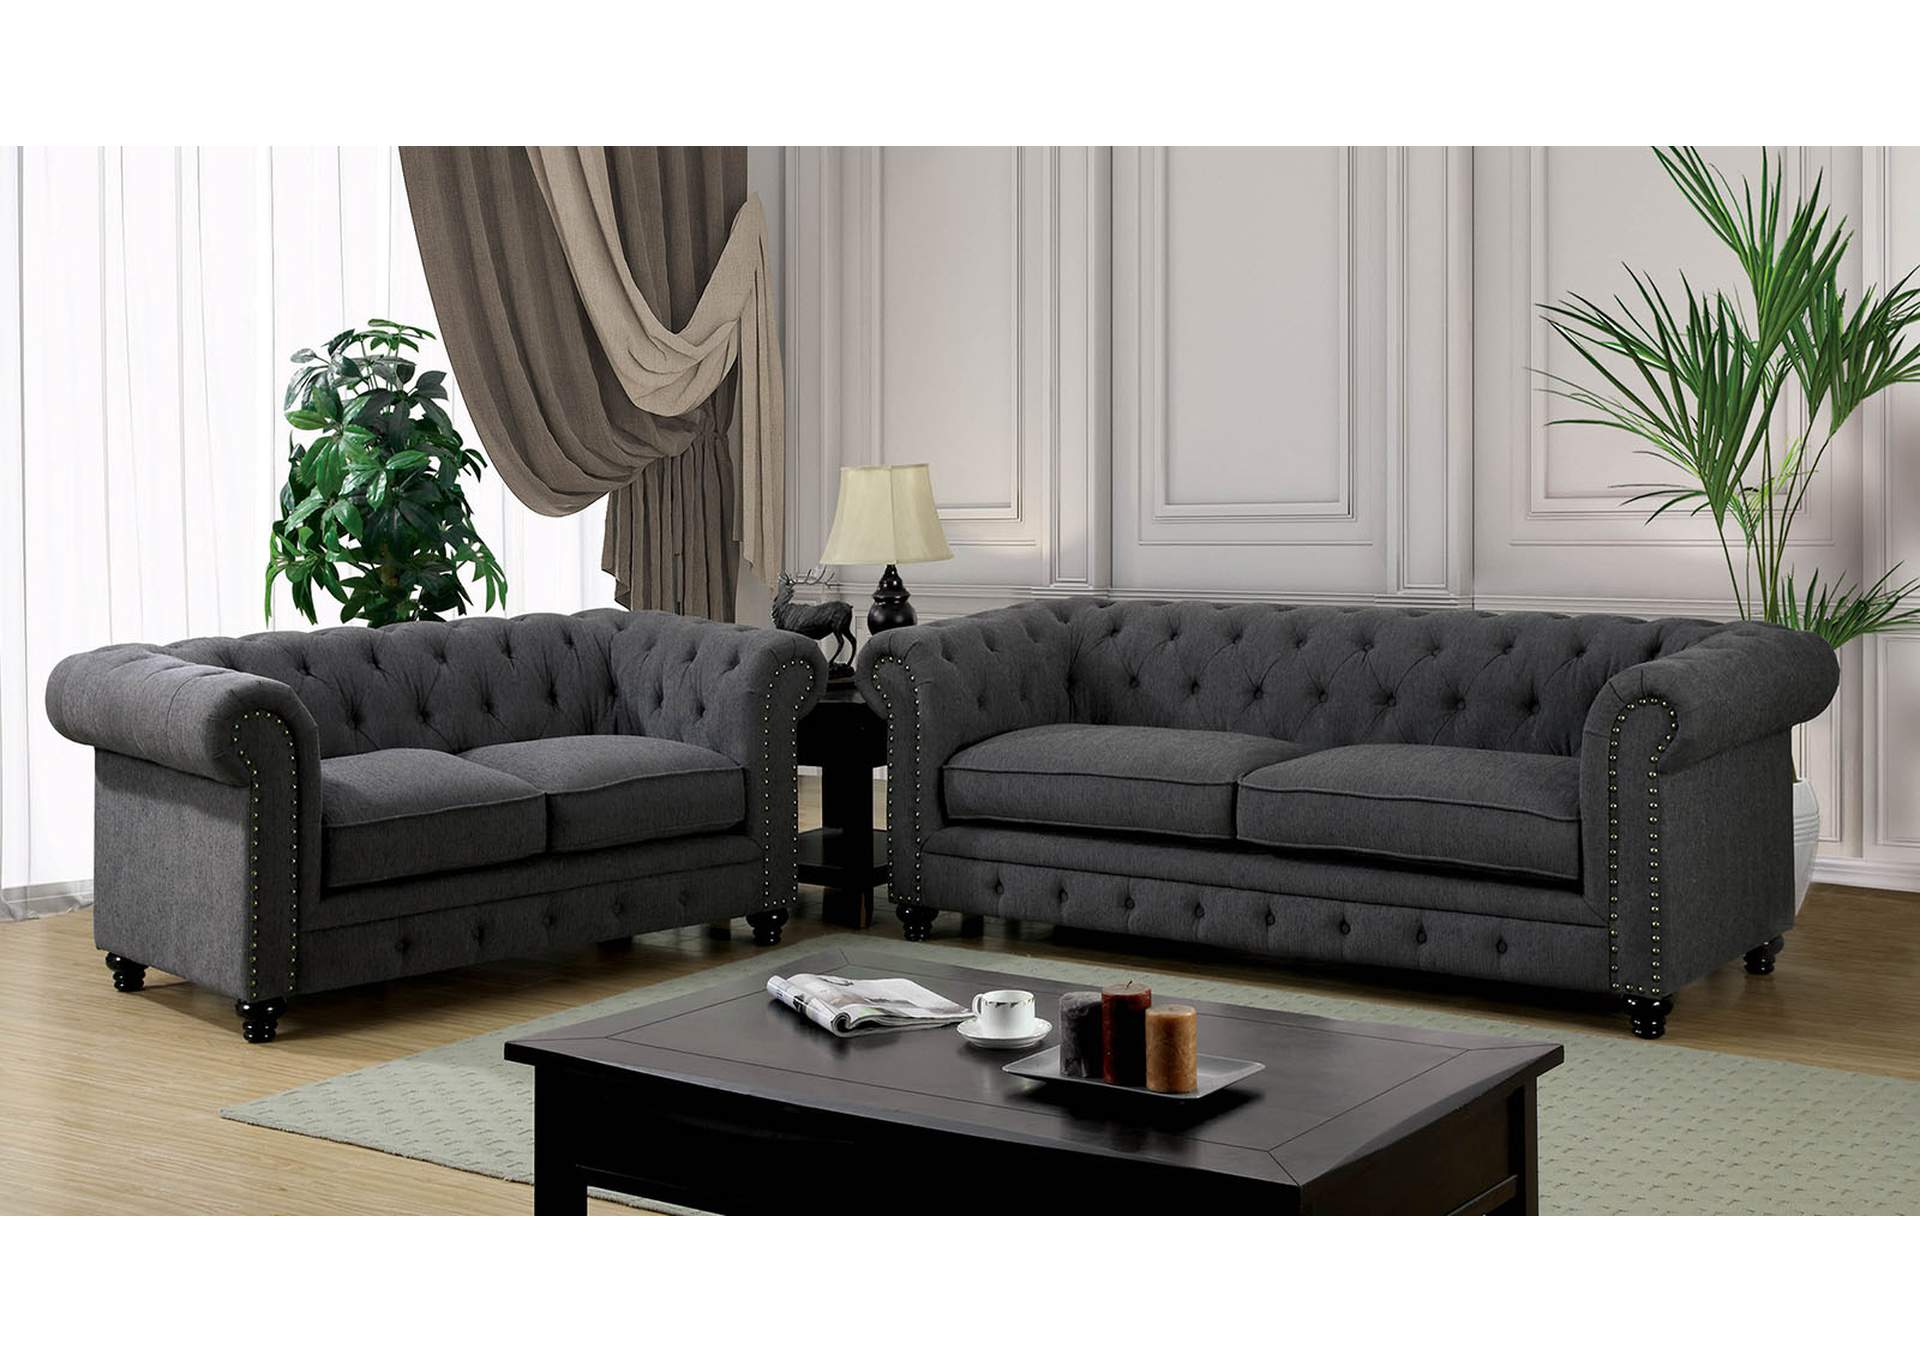 furniture ville bronx ny stanford gray sofa and loveseat